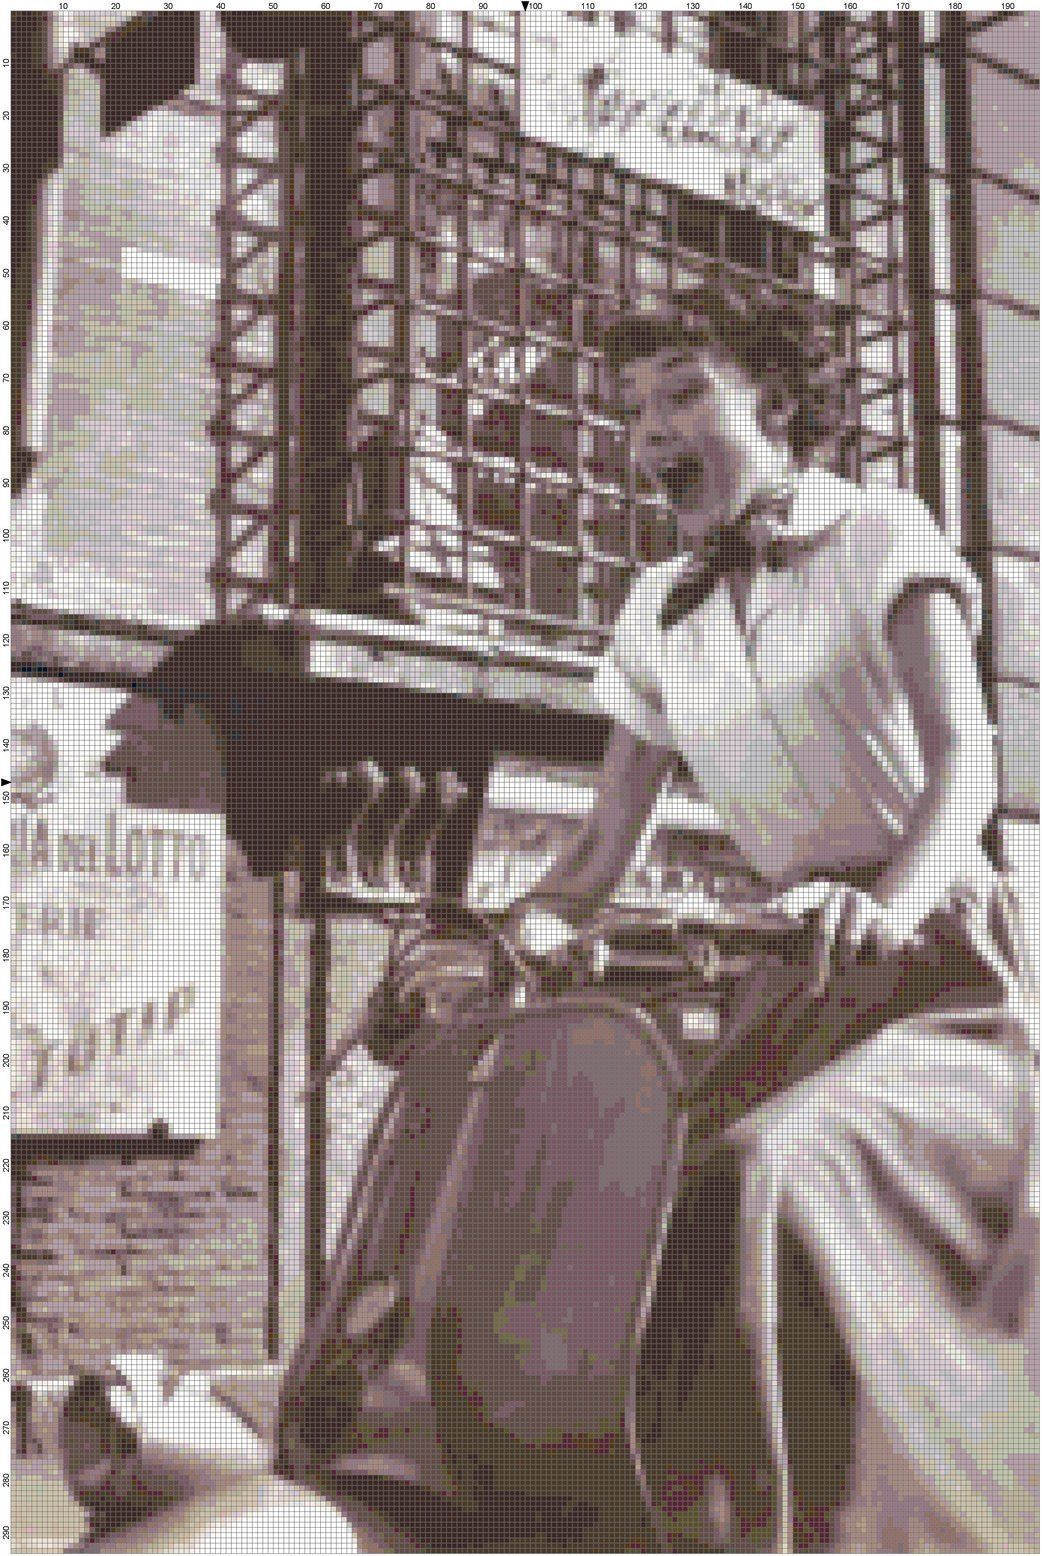 Details about Handmade Audrey Hepburn on Vespa Scooter DIGITAL Counted Cross-Stitch Pattern -   11 holiday Girl audrey hepburn ideas